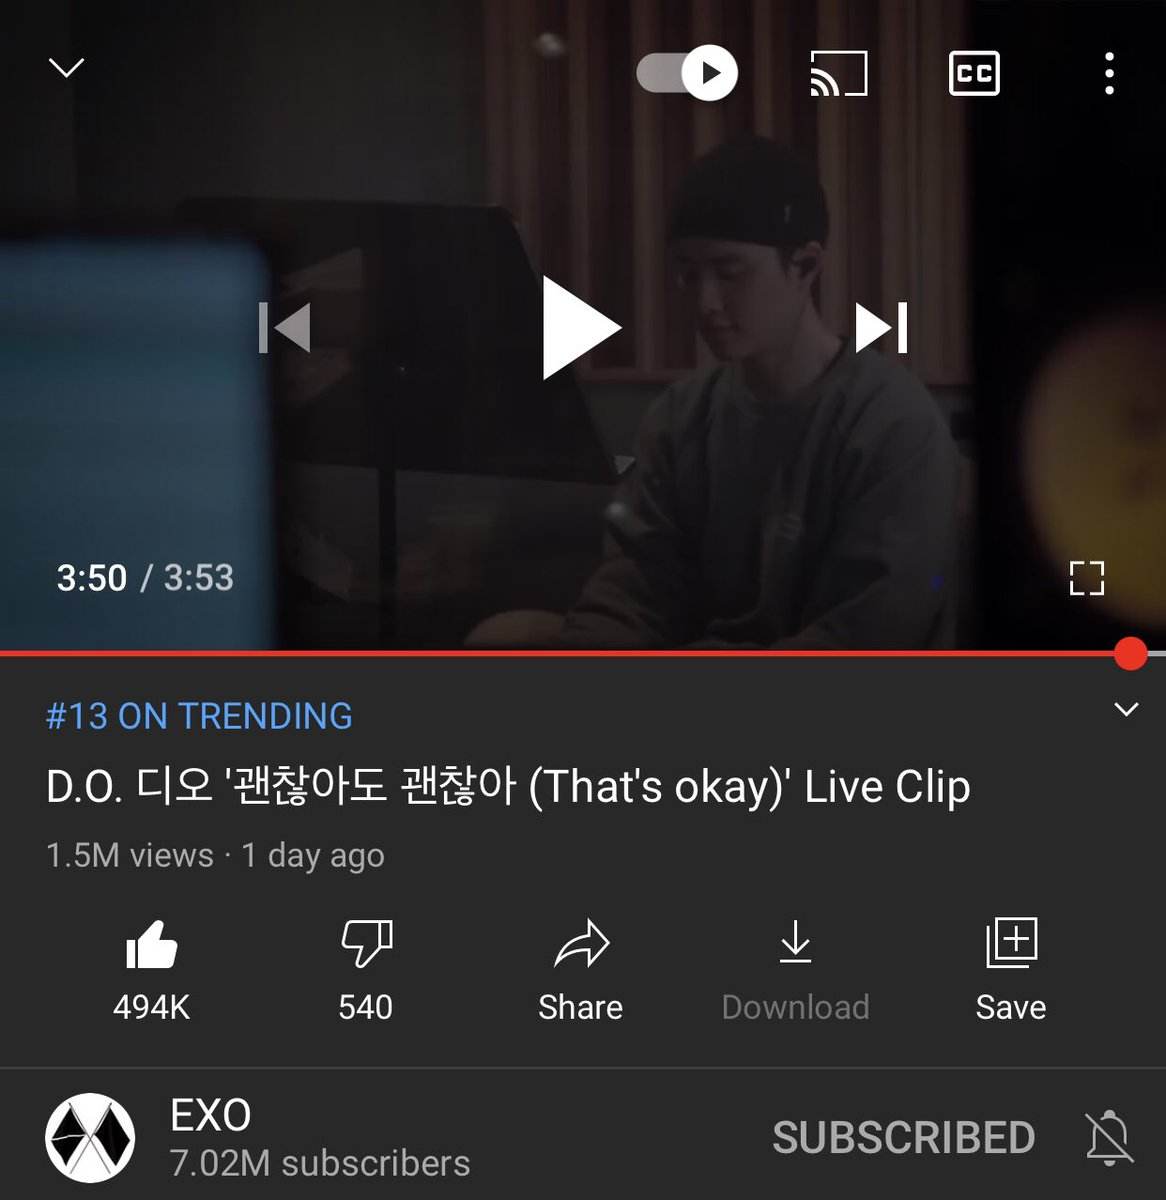 Trending at no.13☺️ exo channel subscribers keep increasing✨ D.O. 디오 괜찮아도 괜찮아 (Thats okay) Live Clip 🖤 watch here: youtu.be/zR043fcuV0Y #kyungsoo #도경수 #디오 #ギョンス